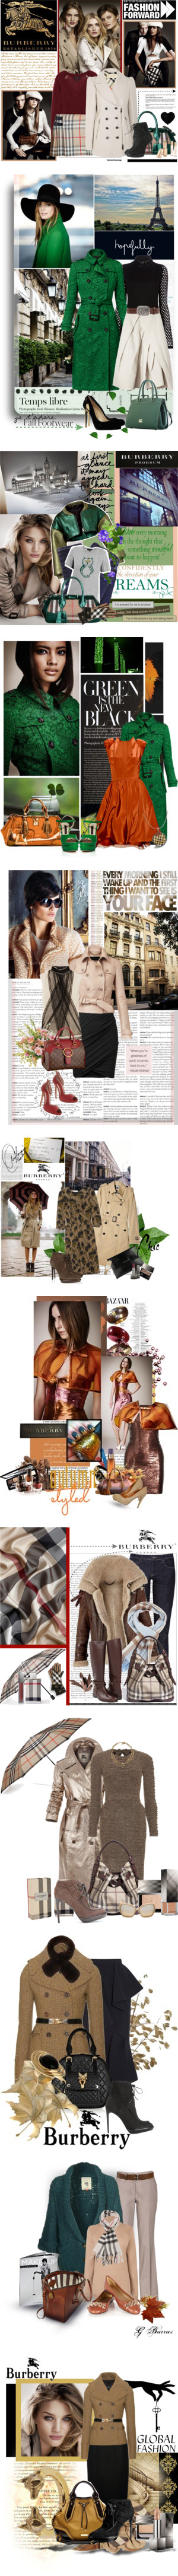 """""""BURBERRY Autumn-Winter 2012/Spring Summer 2013"""" by grazy-love-of-mode ❤ liked on Polyvore"""